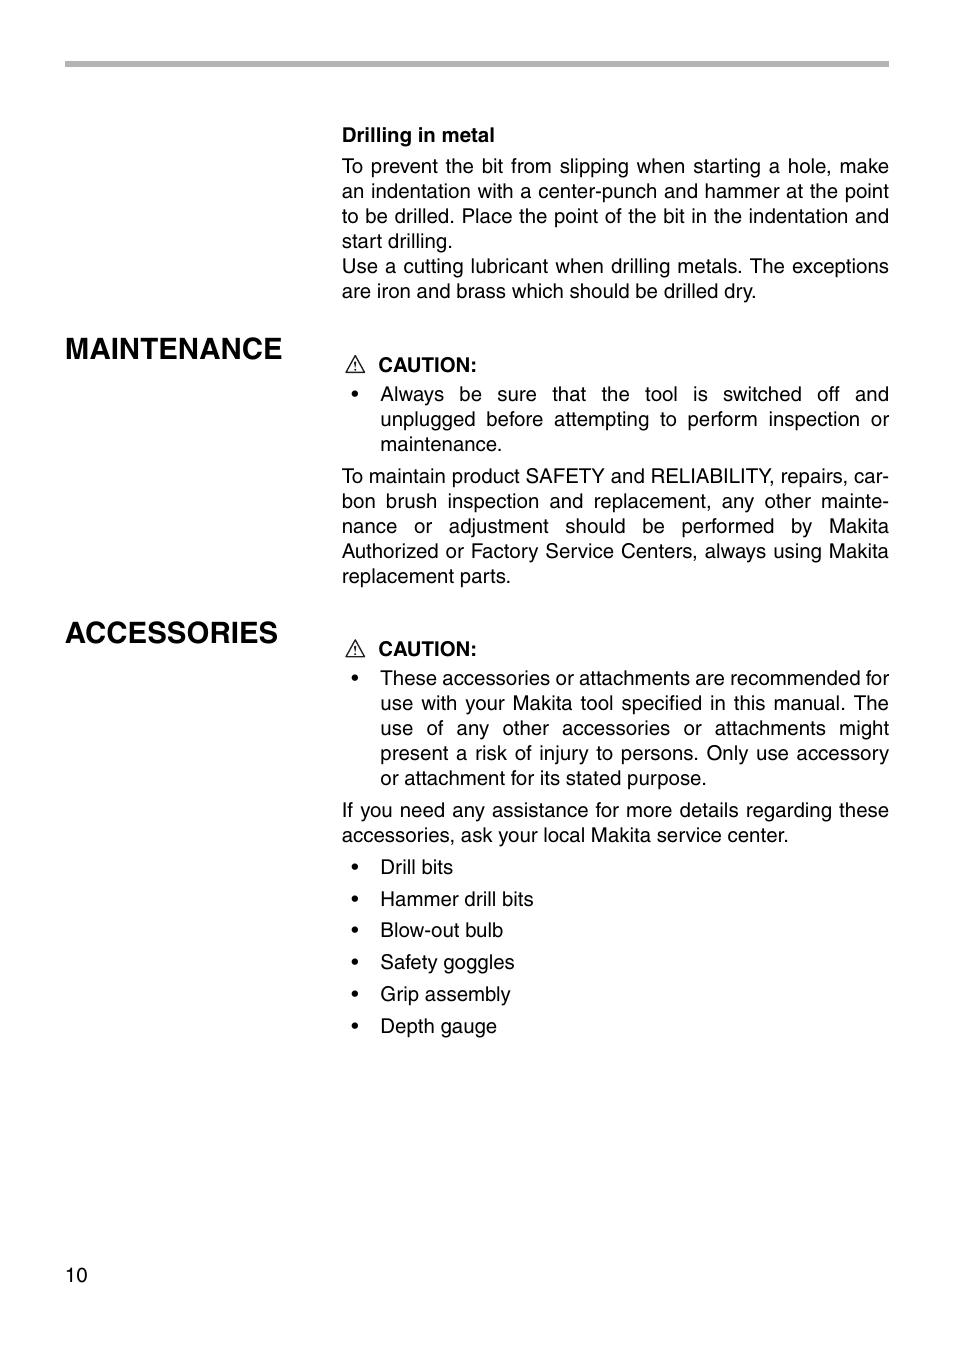 Maintenance, Accessories | Makita HP1500 User Manual | Page